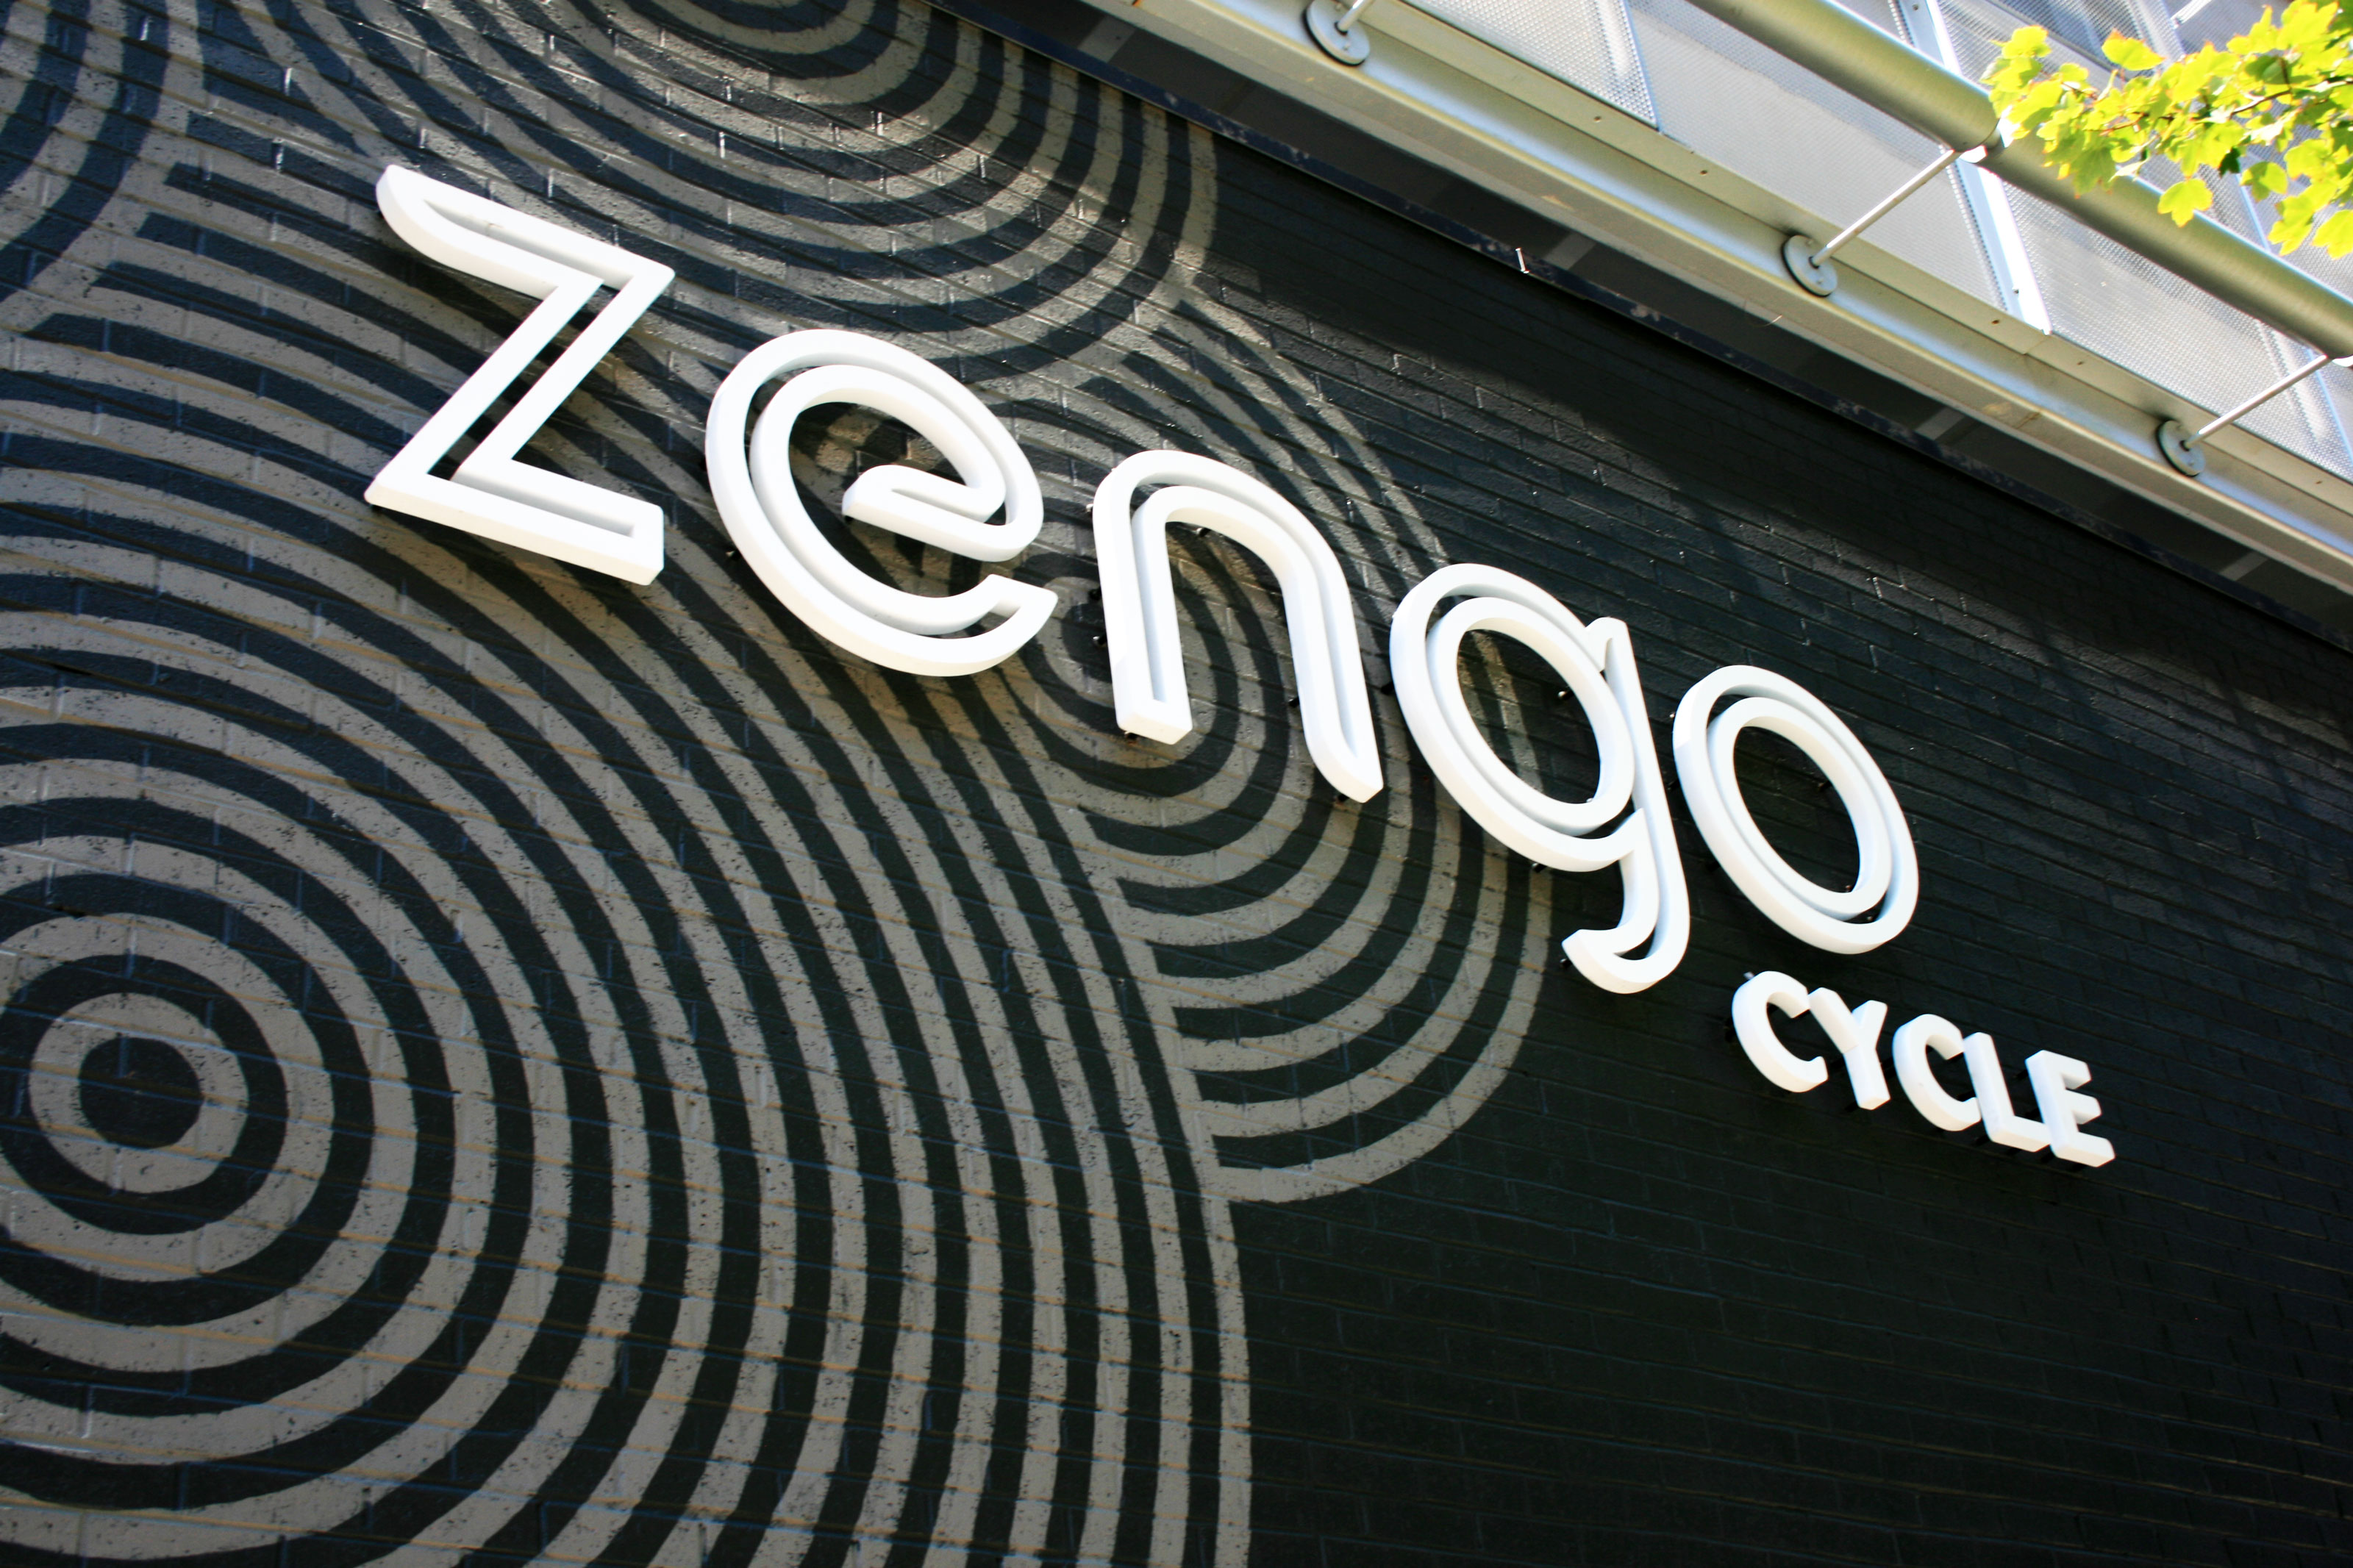 Zengo Cycle